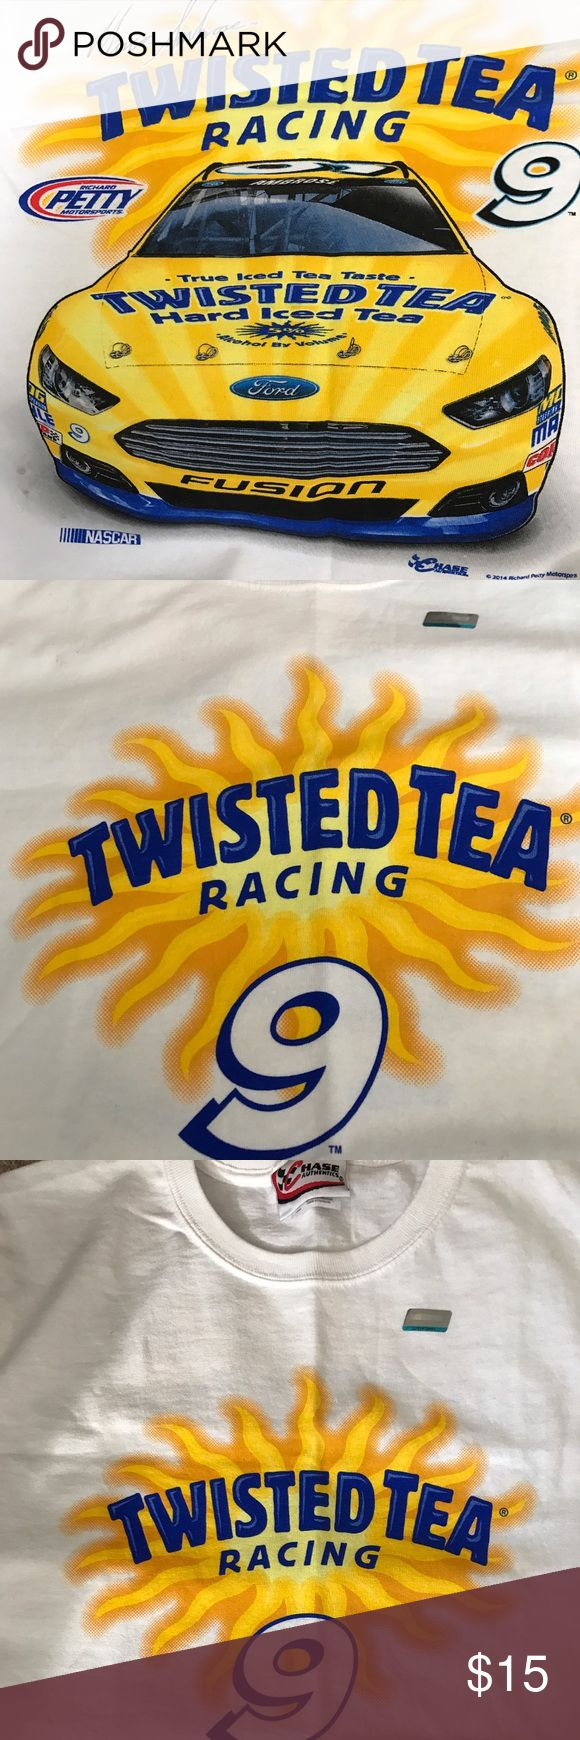 Twisted Tea Logo t-shirt Twisted Tea logo t-shirt from vendor SIZE M NWOT never worn Hase Authenics Tops Tees - Short Sleeve